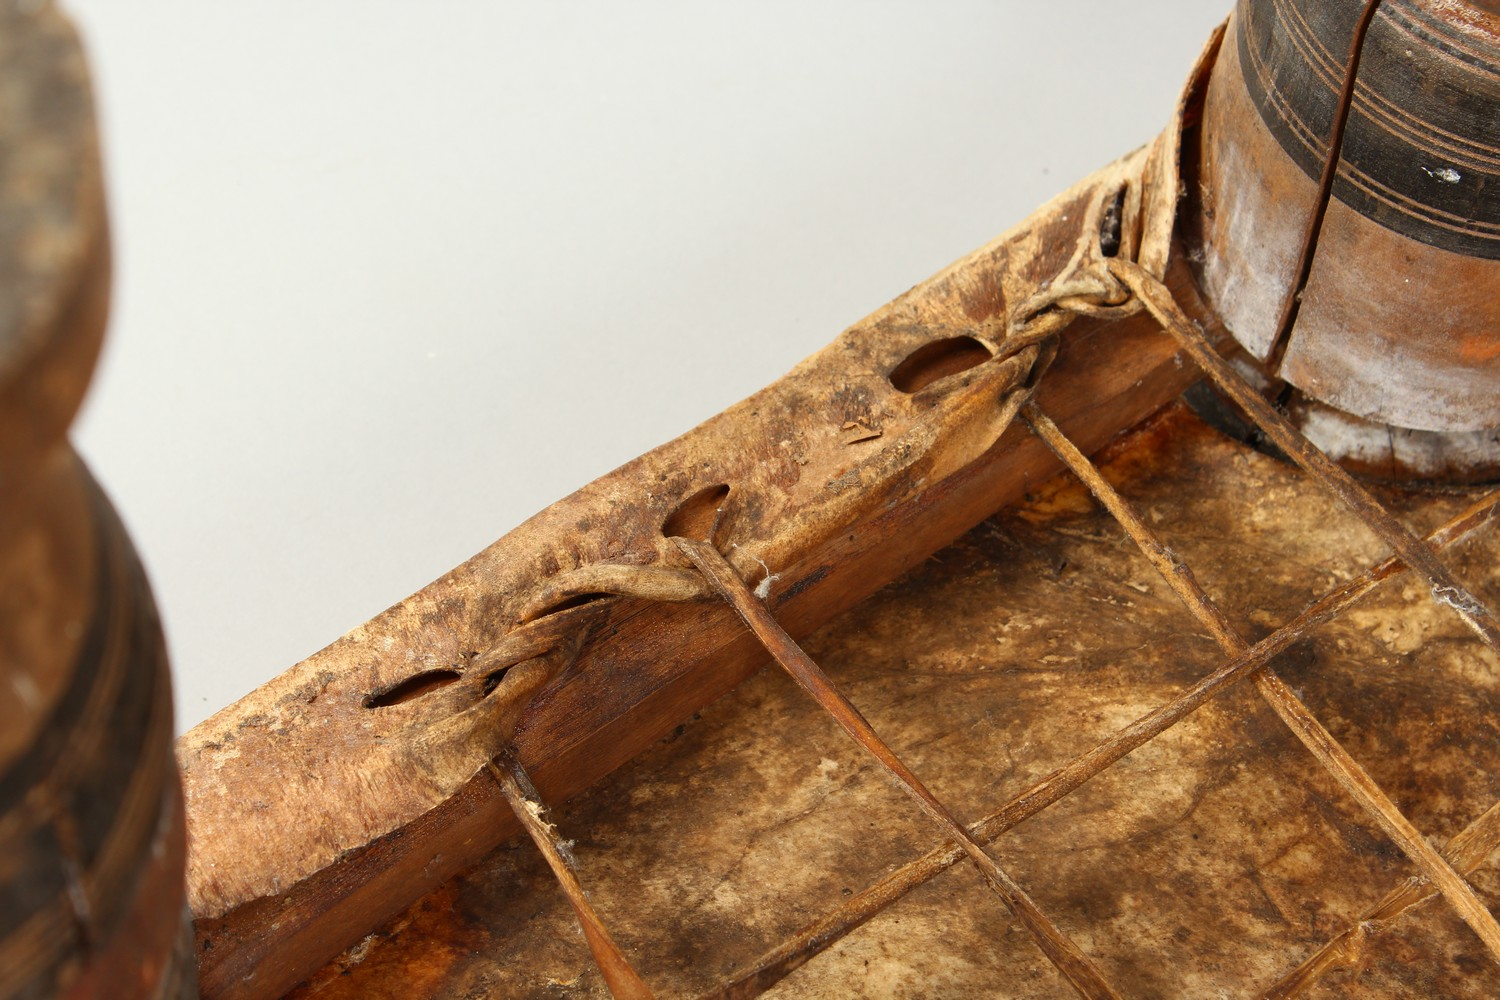 A NORTH AFRICAN PAINTED WOOD AND ANIMAL SKIN SQUARE SHAPED STOOL. 15ins wide x 11.5ins high. - Image 8 of 8